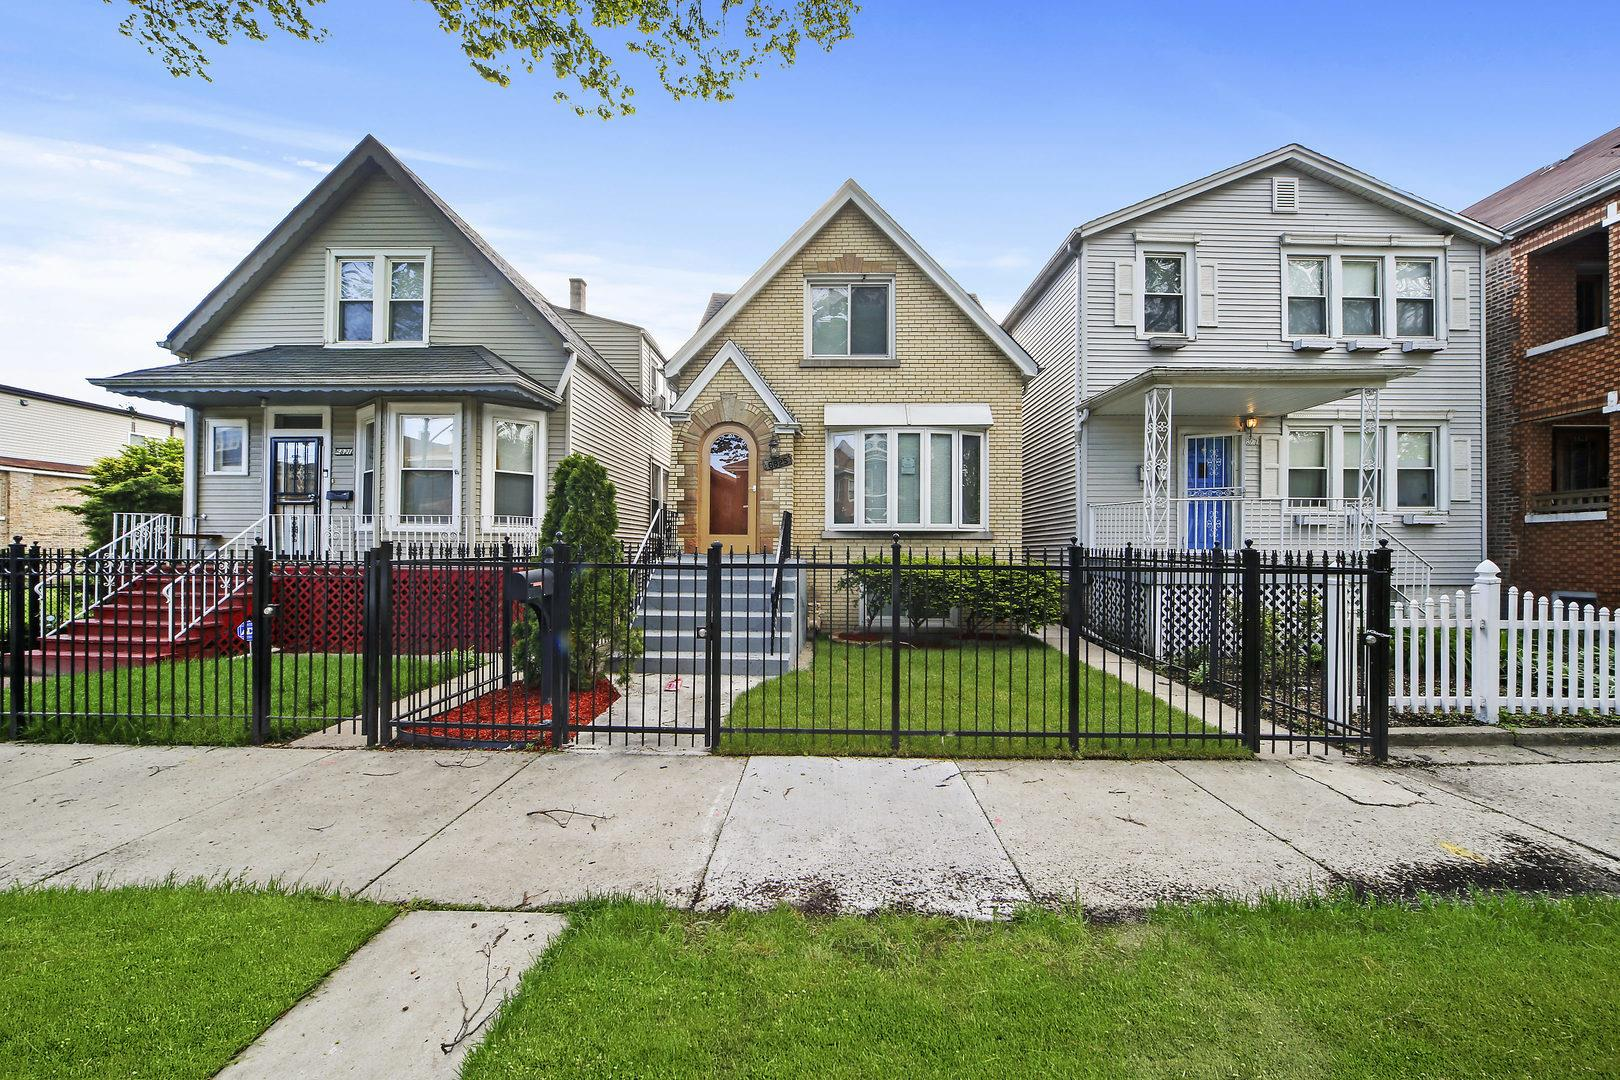 6825 S Rockwell Street #2, Chicago, IL 60629 - #: 10807859